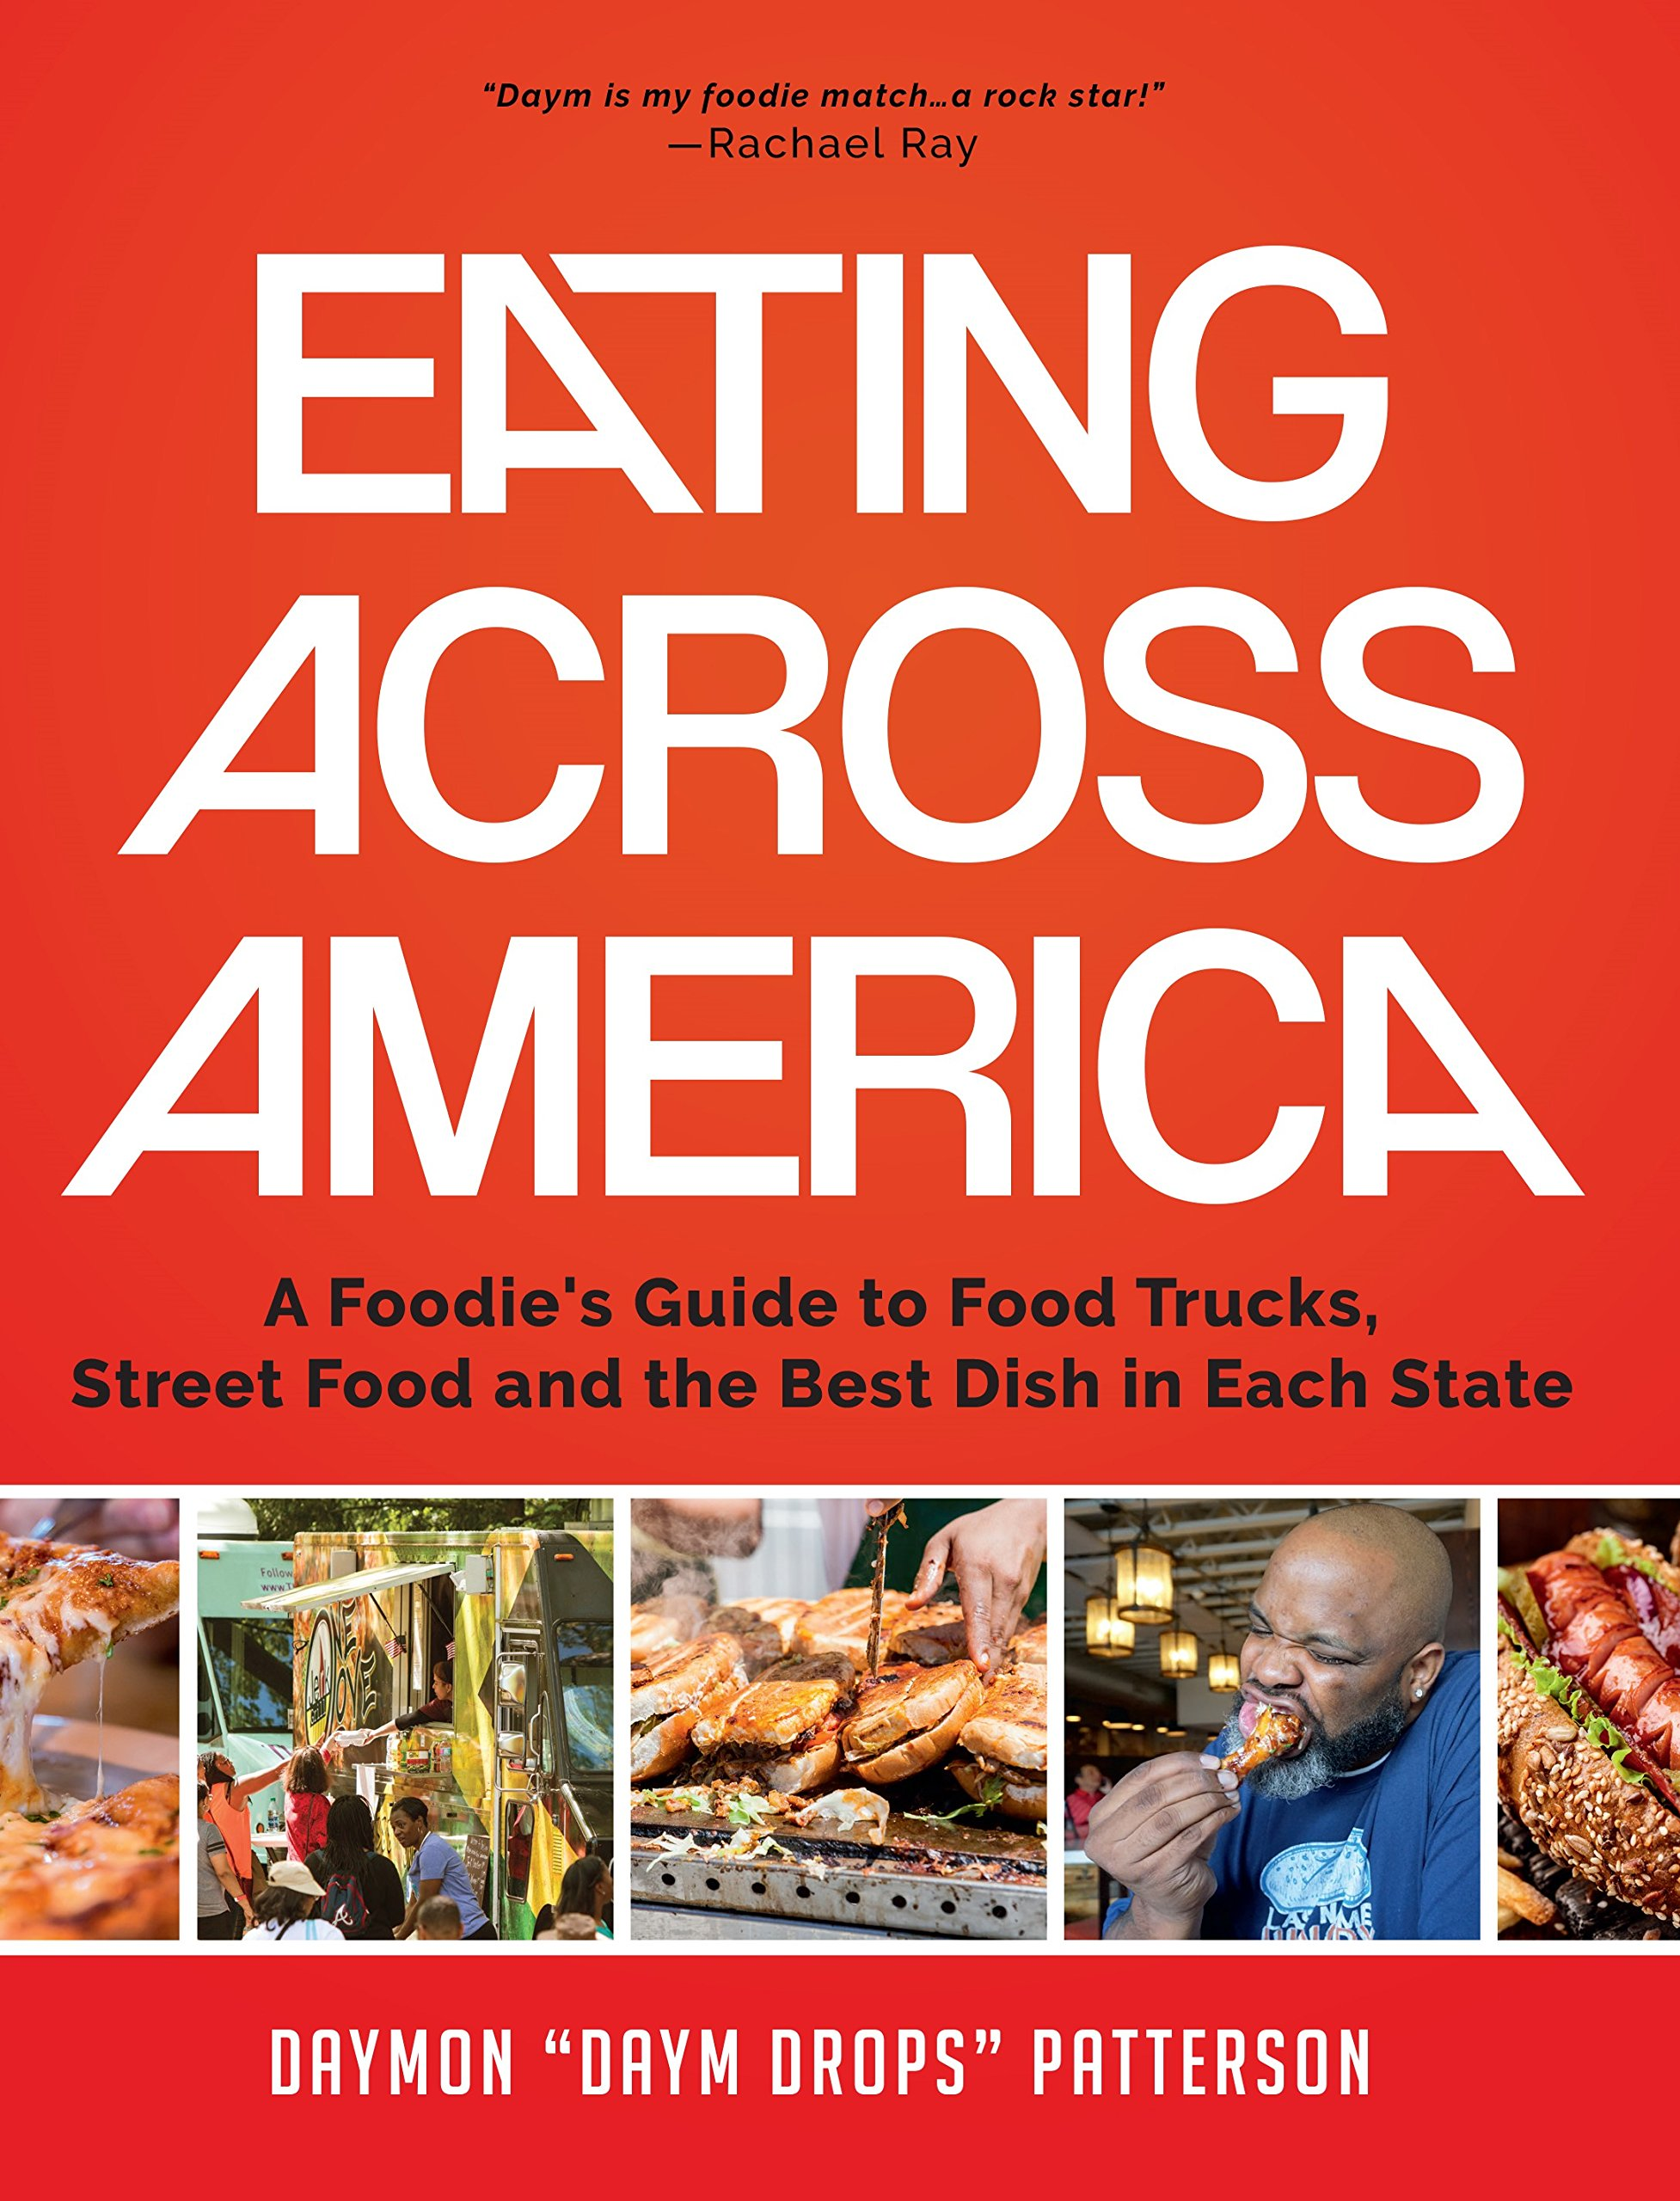 Eating across america a foodies guide to food trucks street food eating across america a foodies guide to food trucks street food and the best dish in each state daymon patterson 9781633536869 amazon books forumfinder Gallery